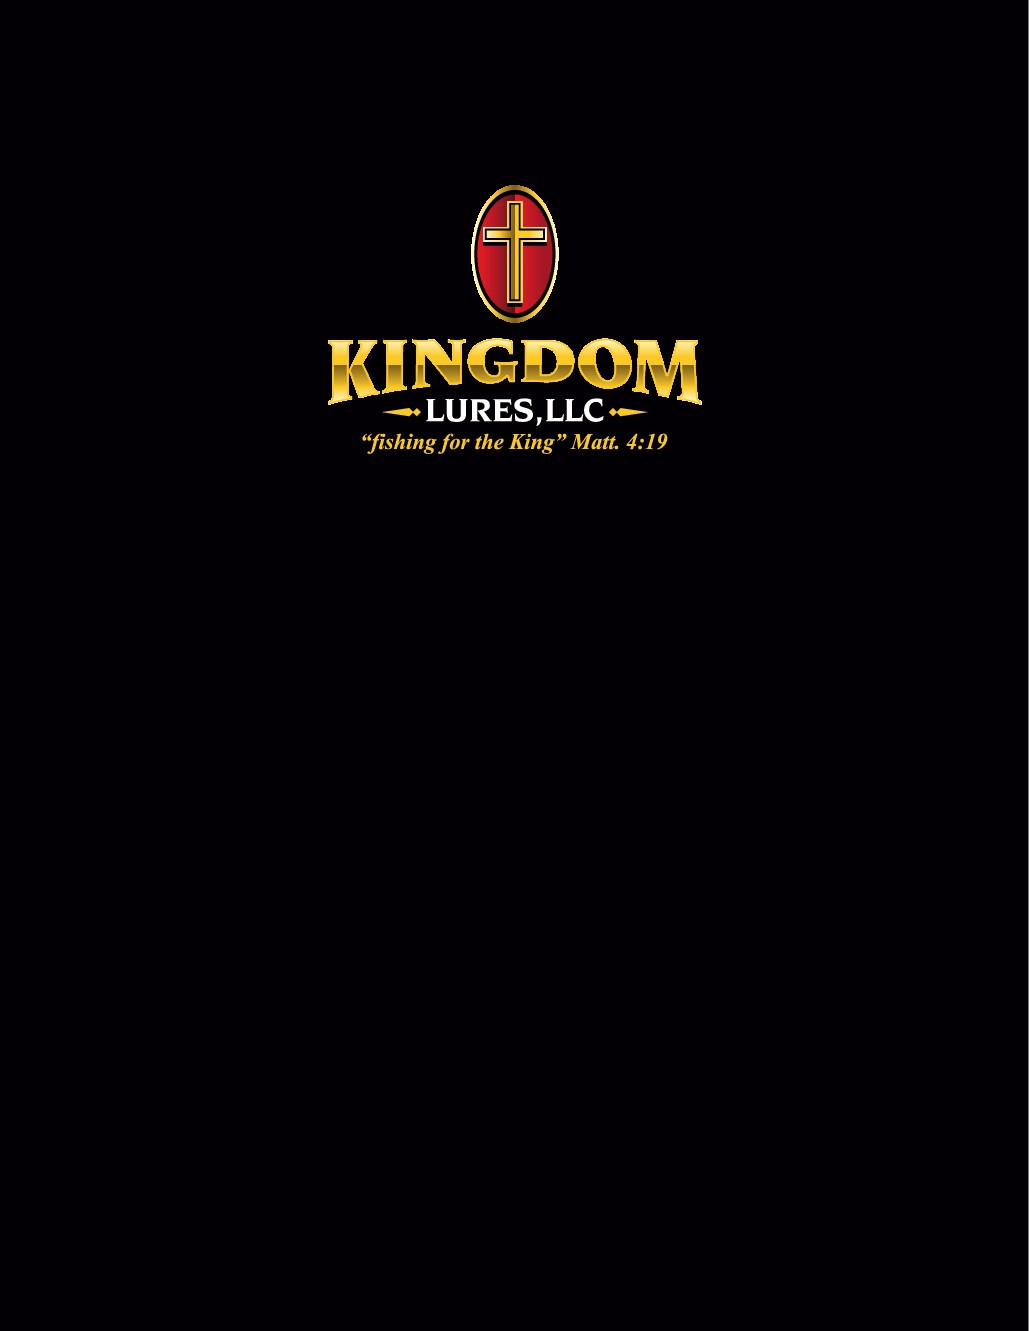 A logo that will glorify The Lord Jesus Christ